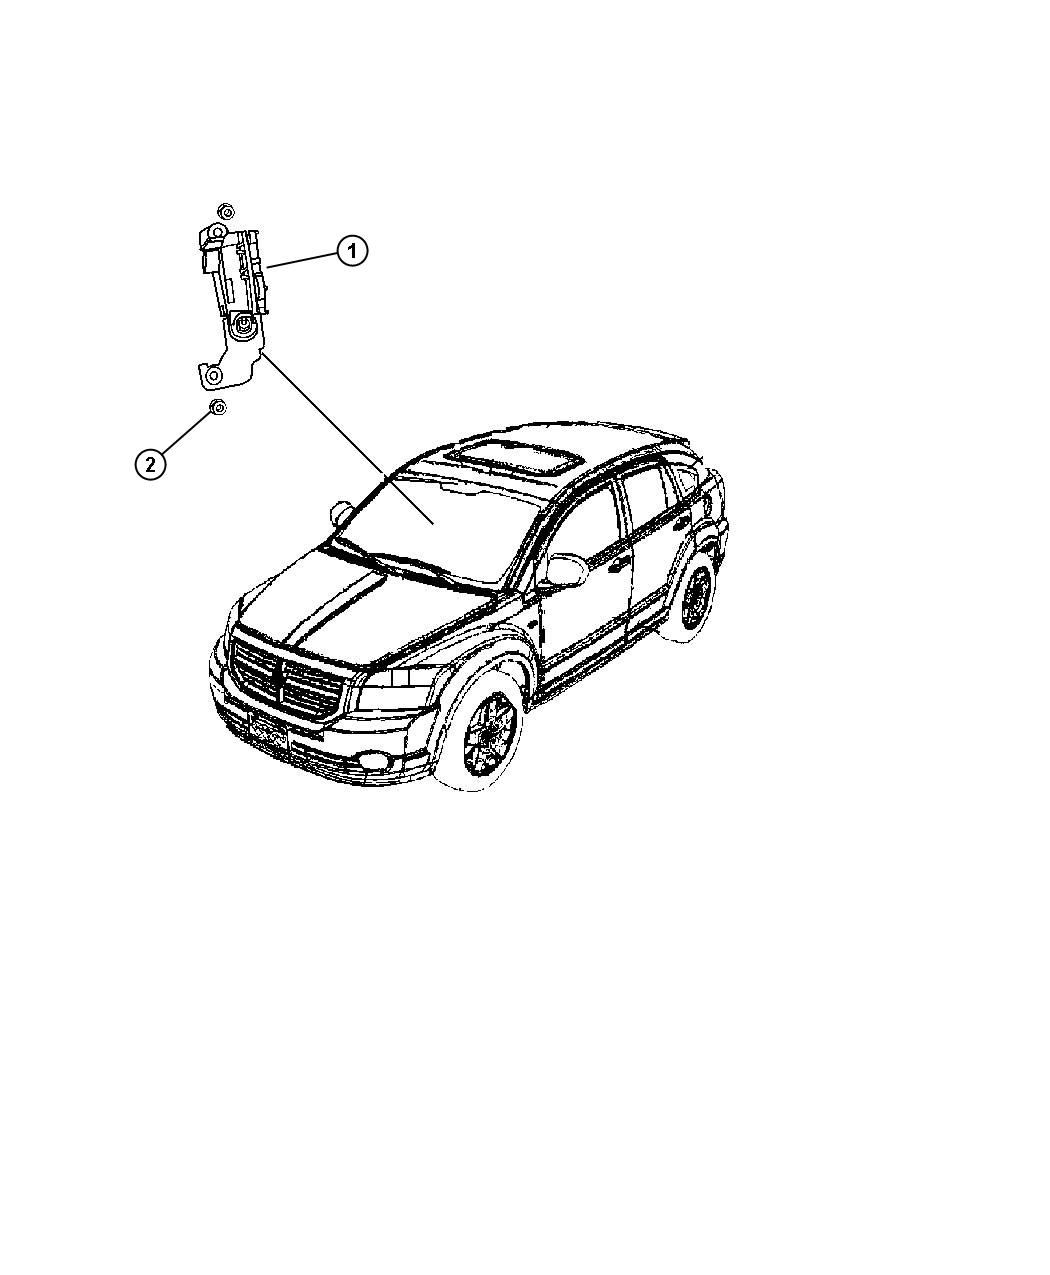 Jeep Compass Sensor. Dynamics. Used for: lateral